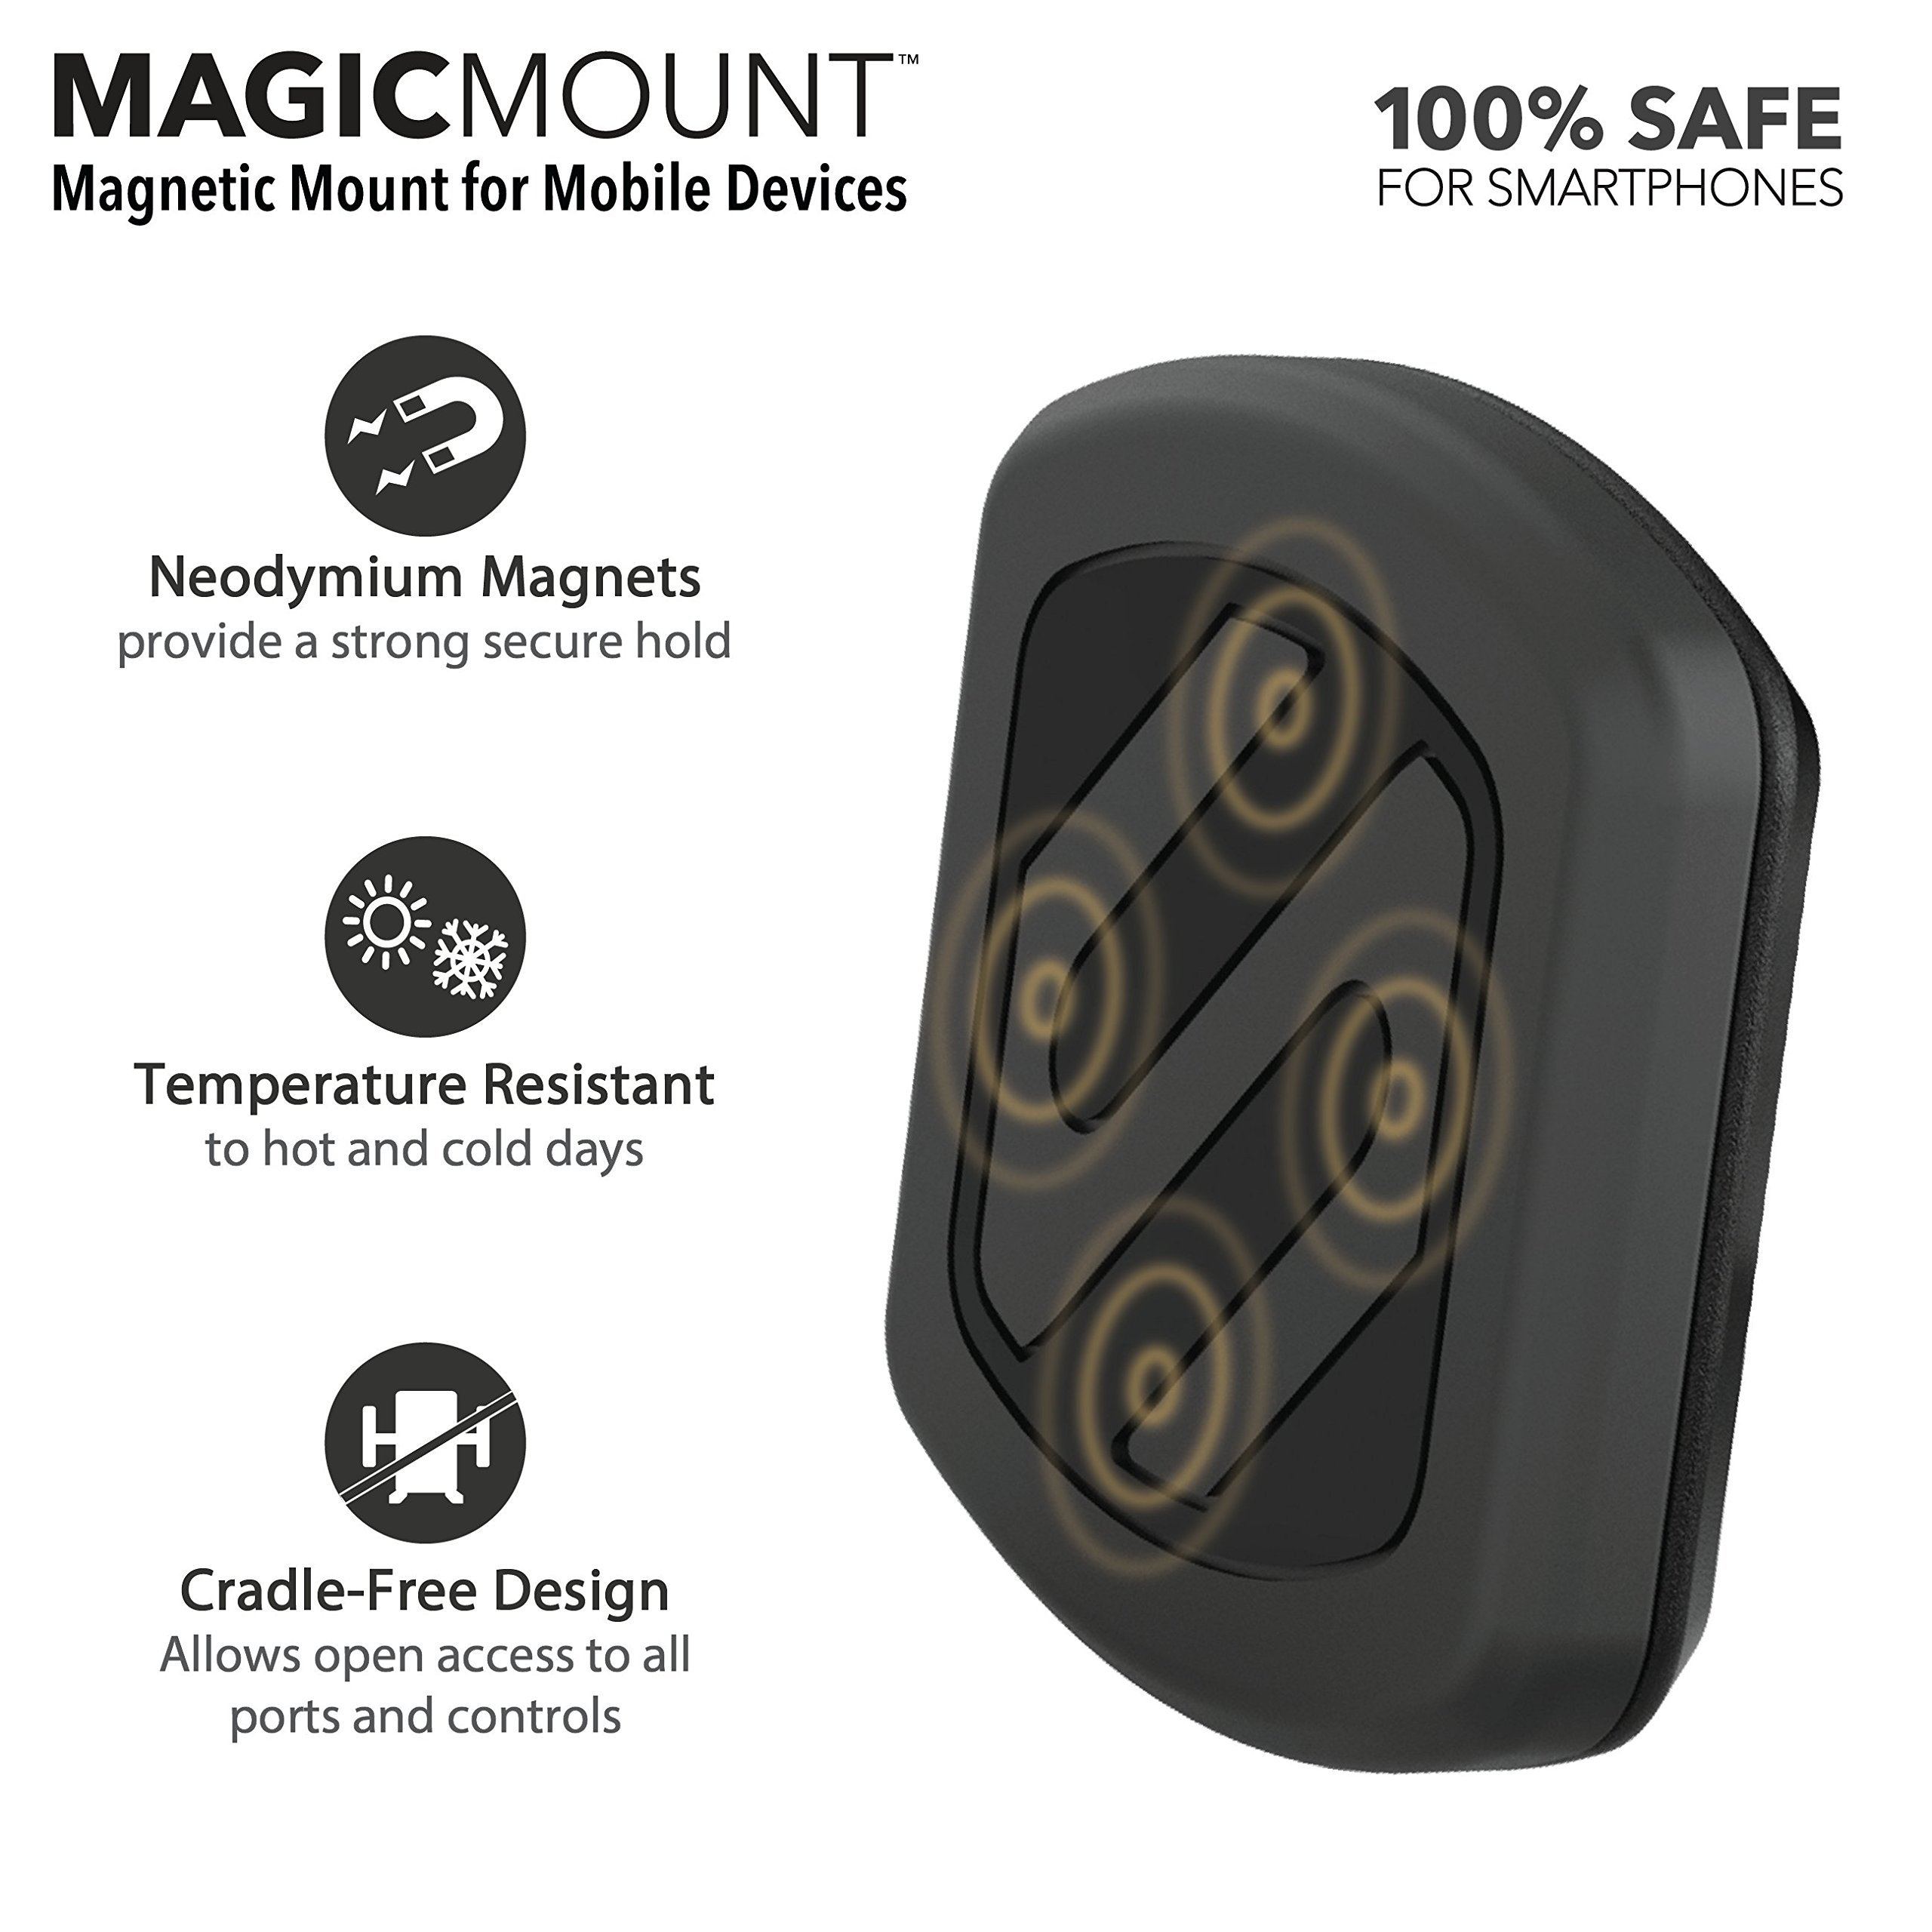 SCOSCHE MAGWSM2 MagicMount Universal Magnetic Phone/GPS Suction Cup Mount for the Car, Home or Office by Scosche (Image #1)